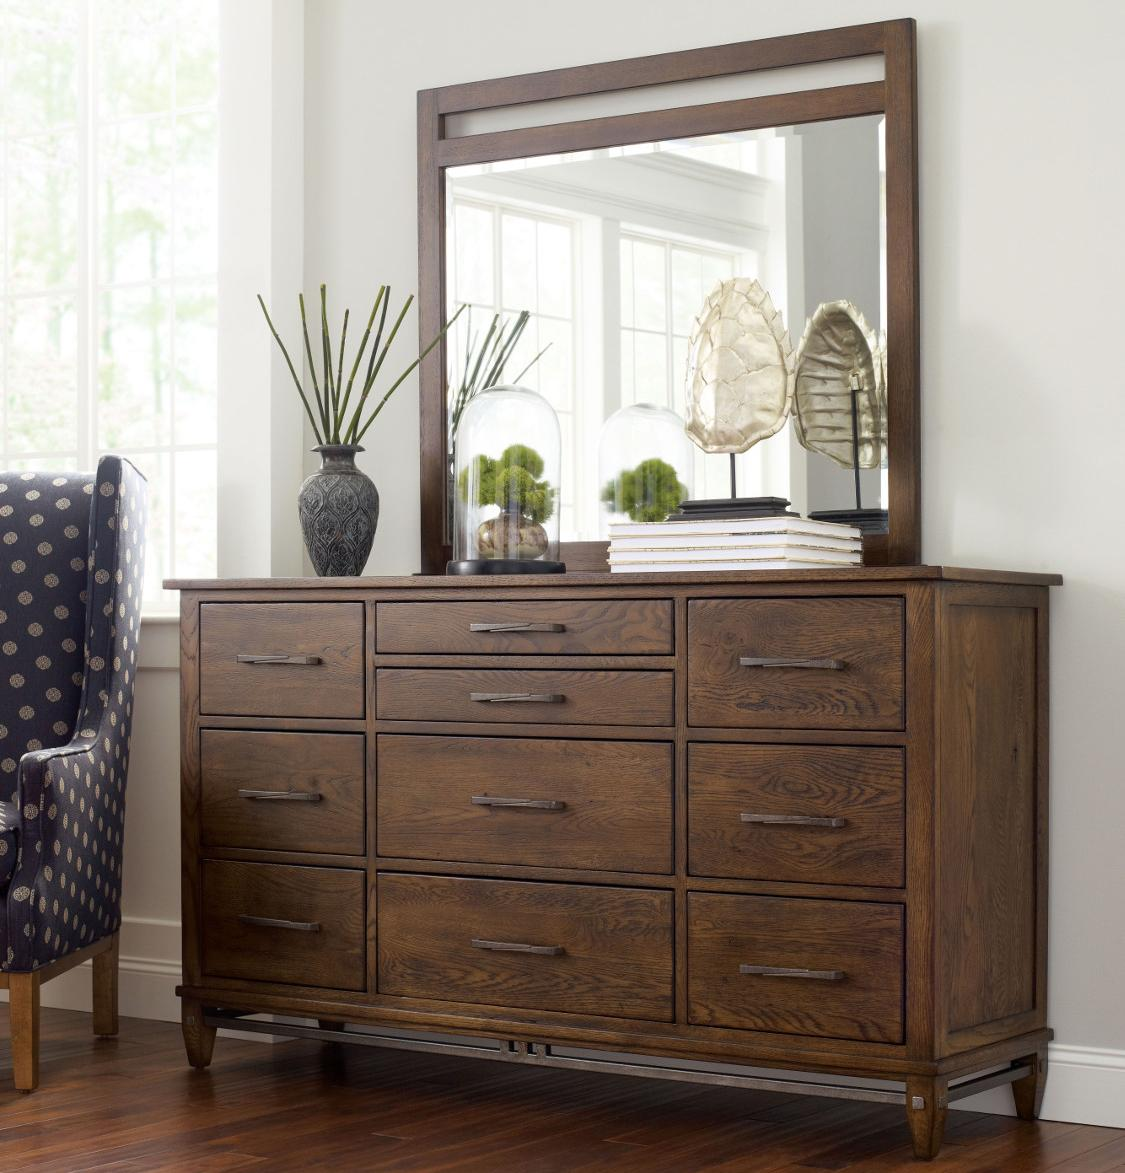 Kincaid Furniture Bedford Park Wheaton Dresser and Mirror - Item Number: 74-160+114